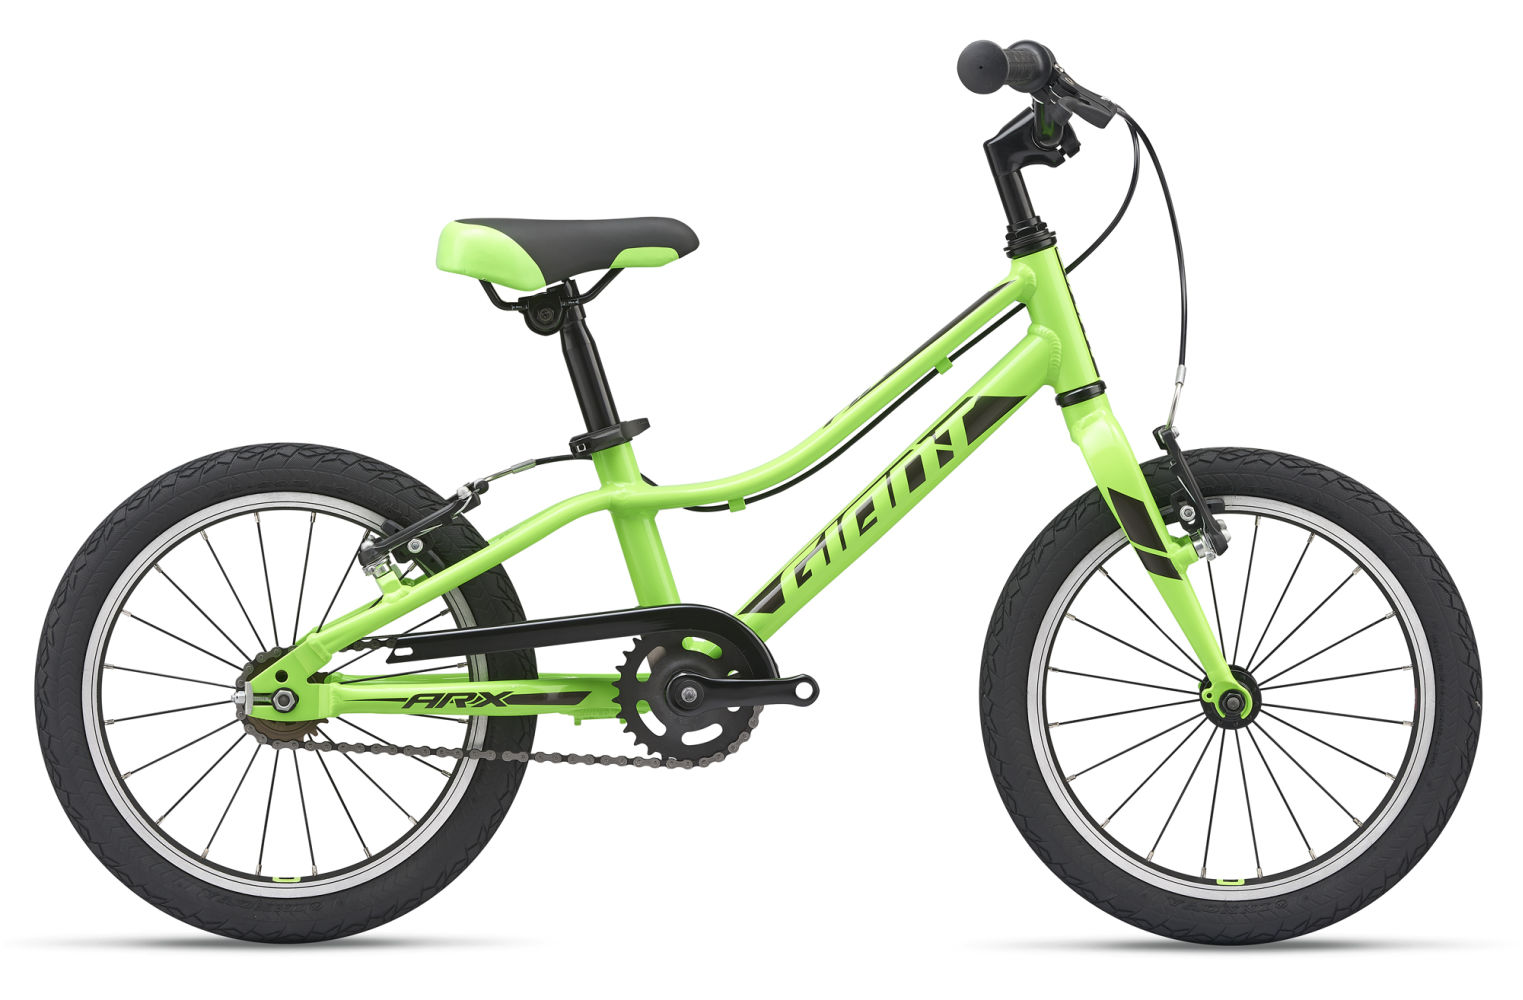 2019 Giant Arx 16 Childs Bike In Green 163 211 50